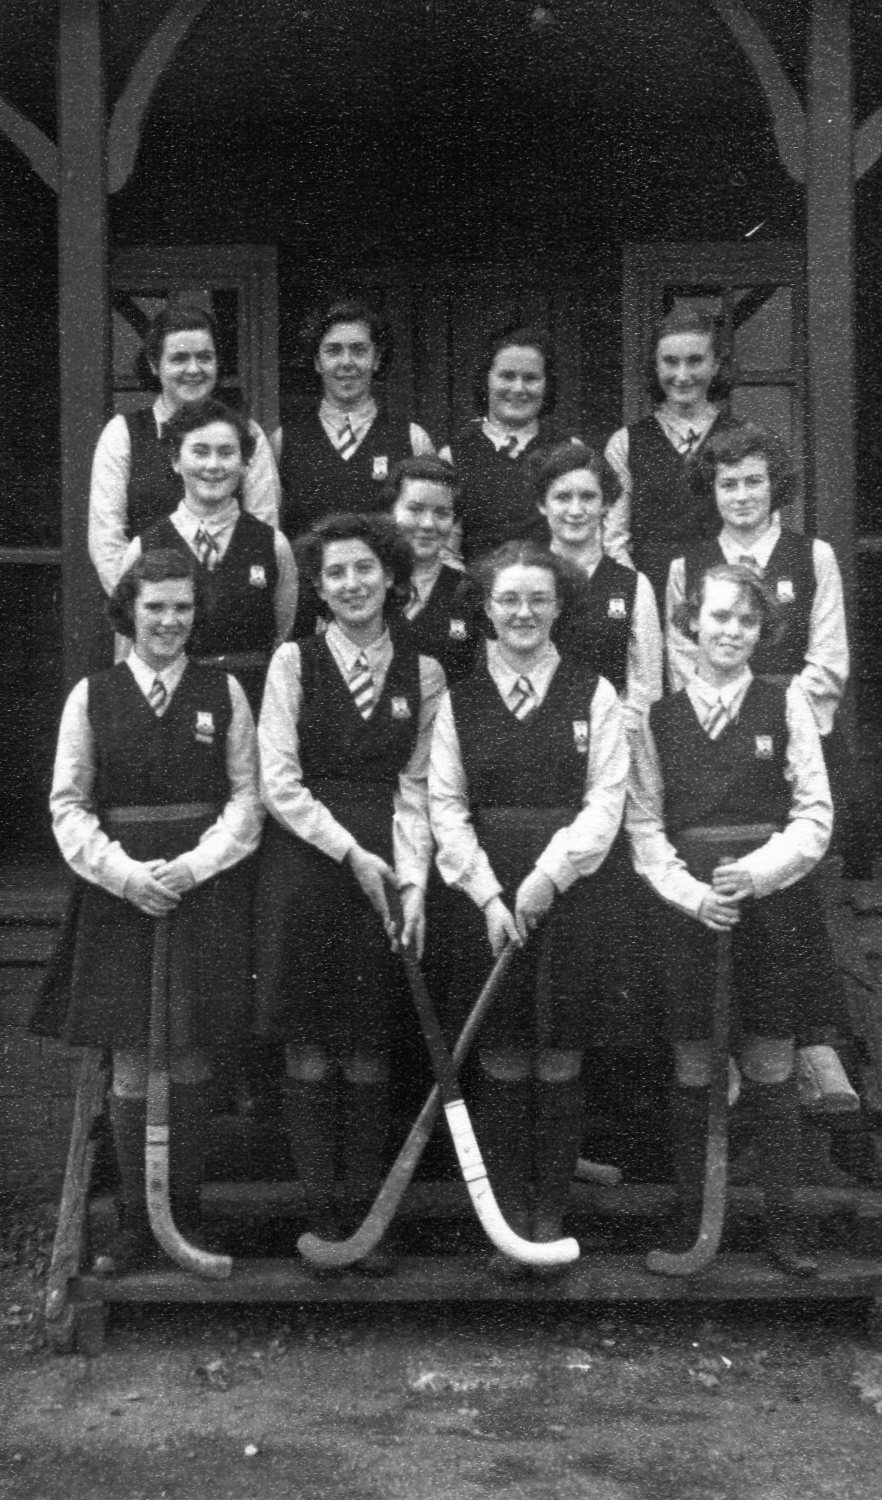 Group photograph of the hockey team, 1951